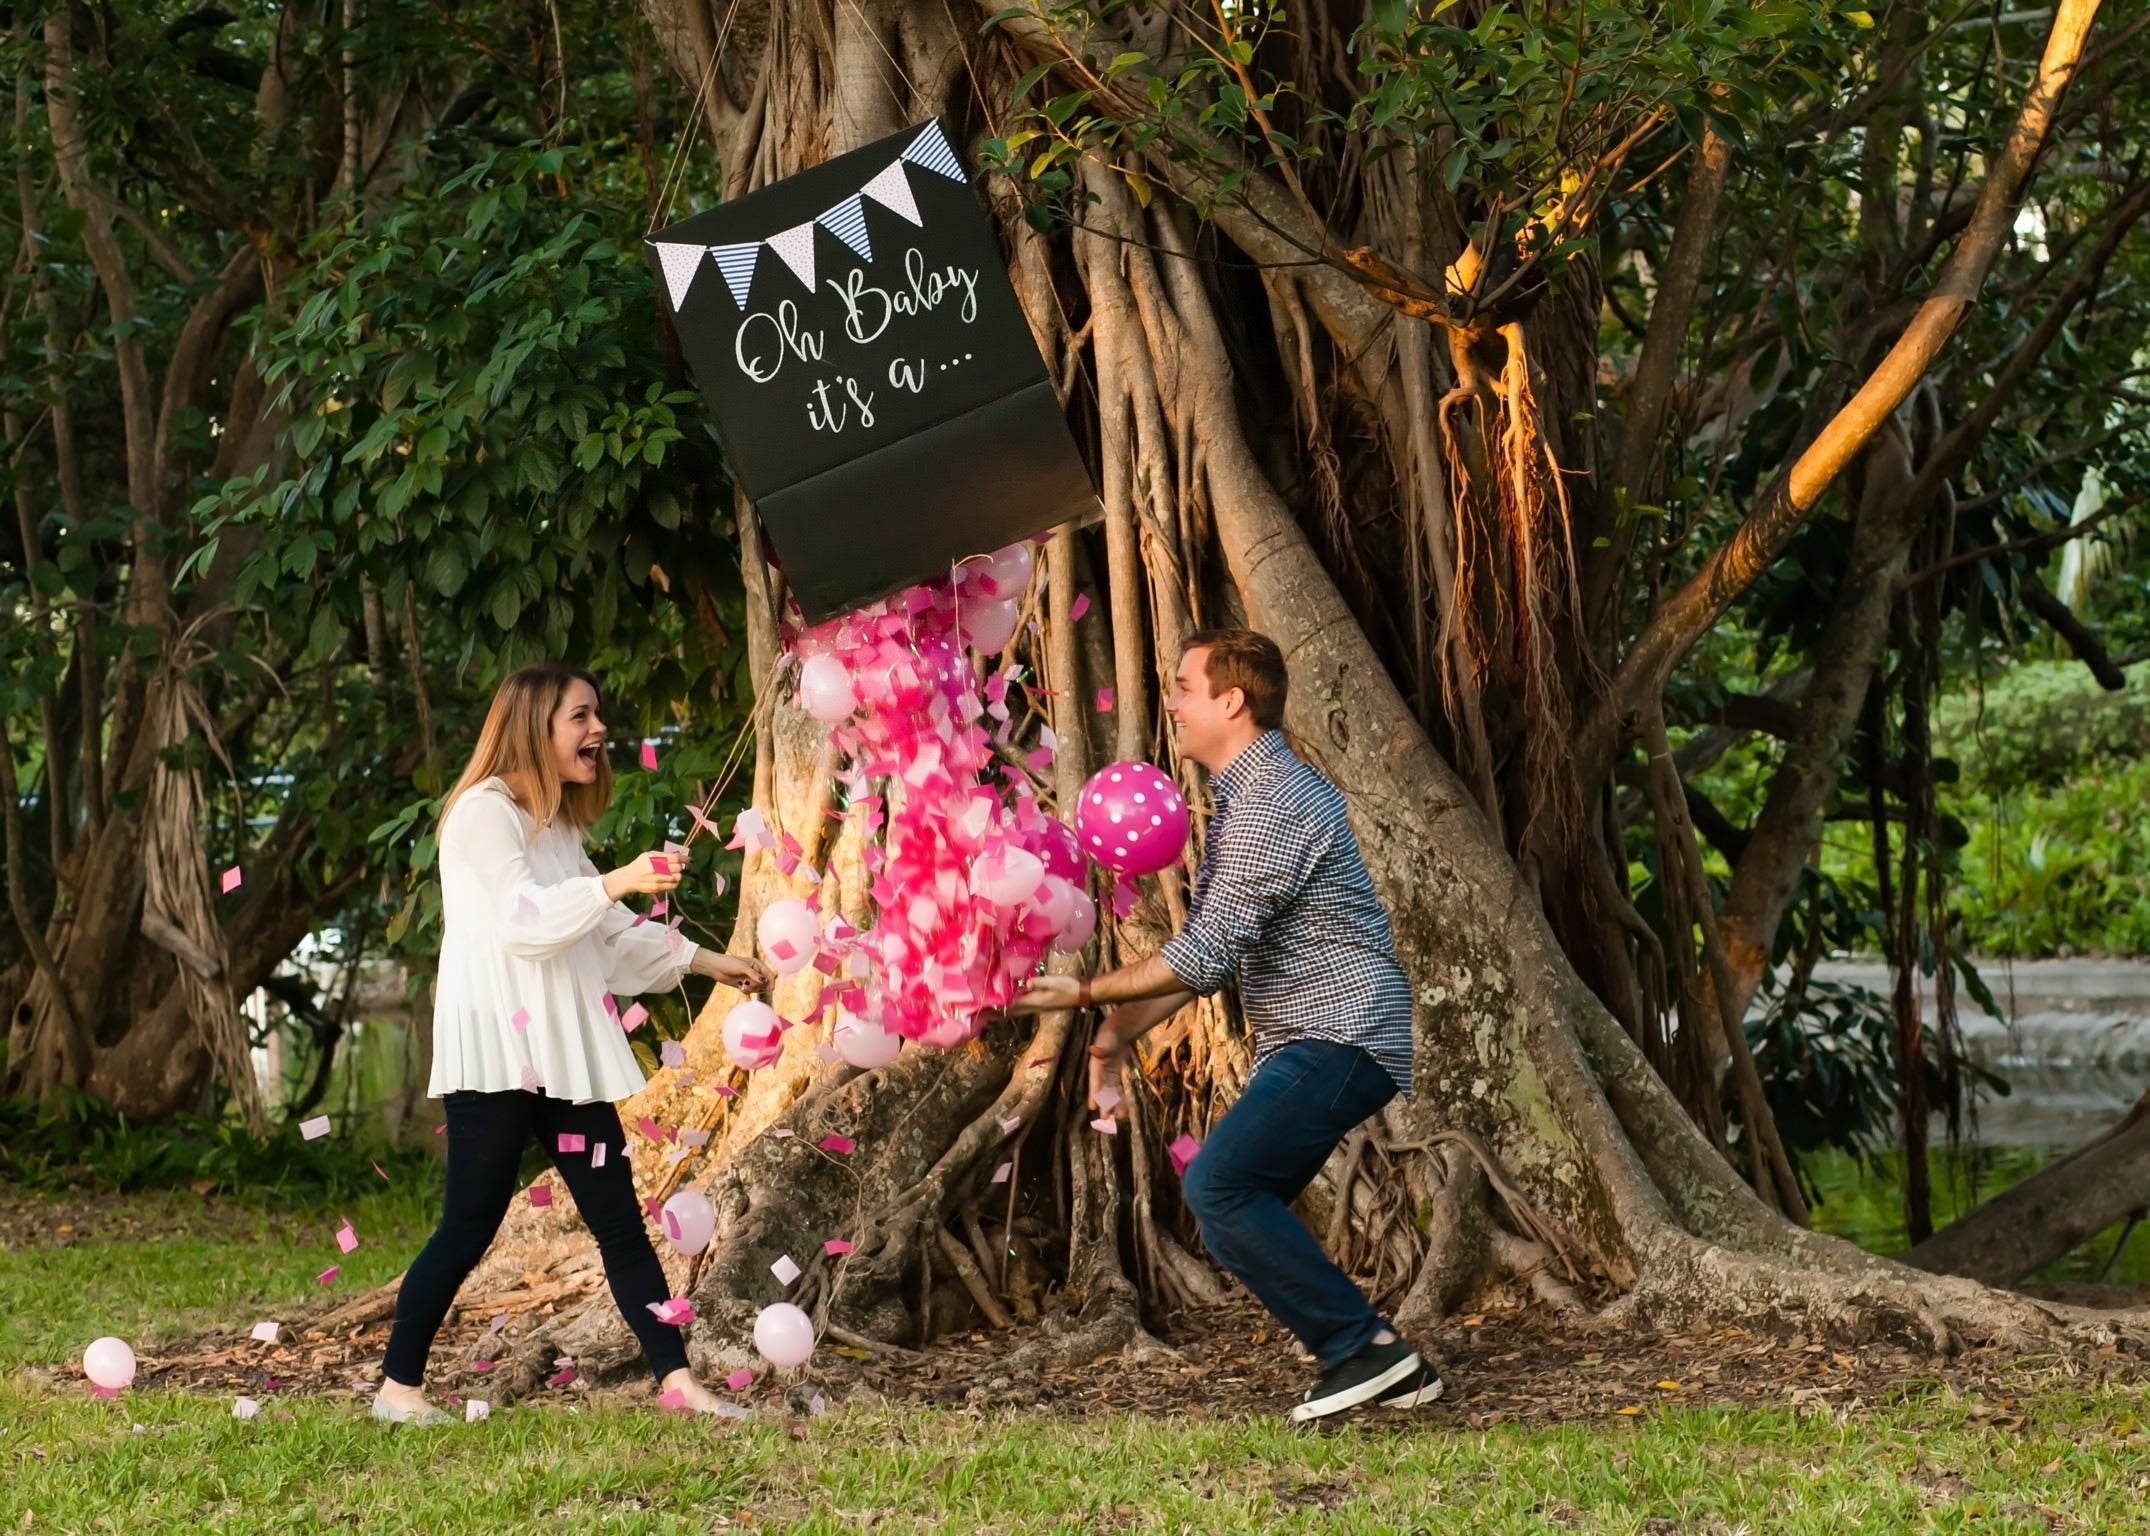 baby, registry, neat method, marissa hagmeyer, gender reveal, baby girl, heather holt photography, fort lauderdale